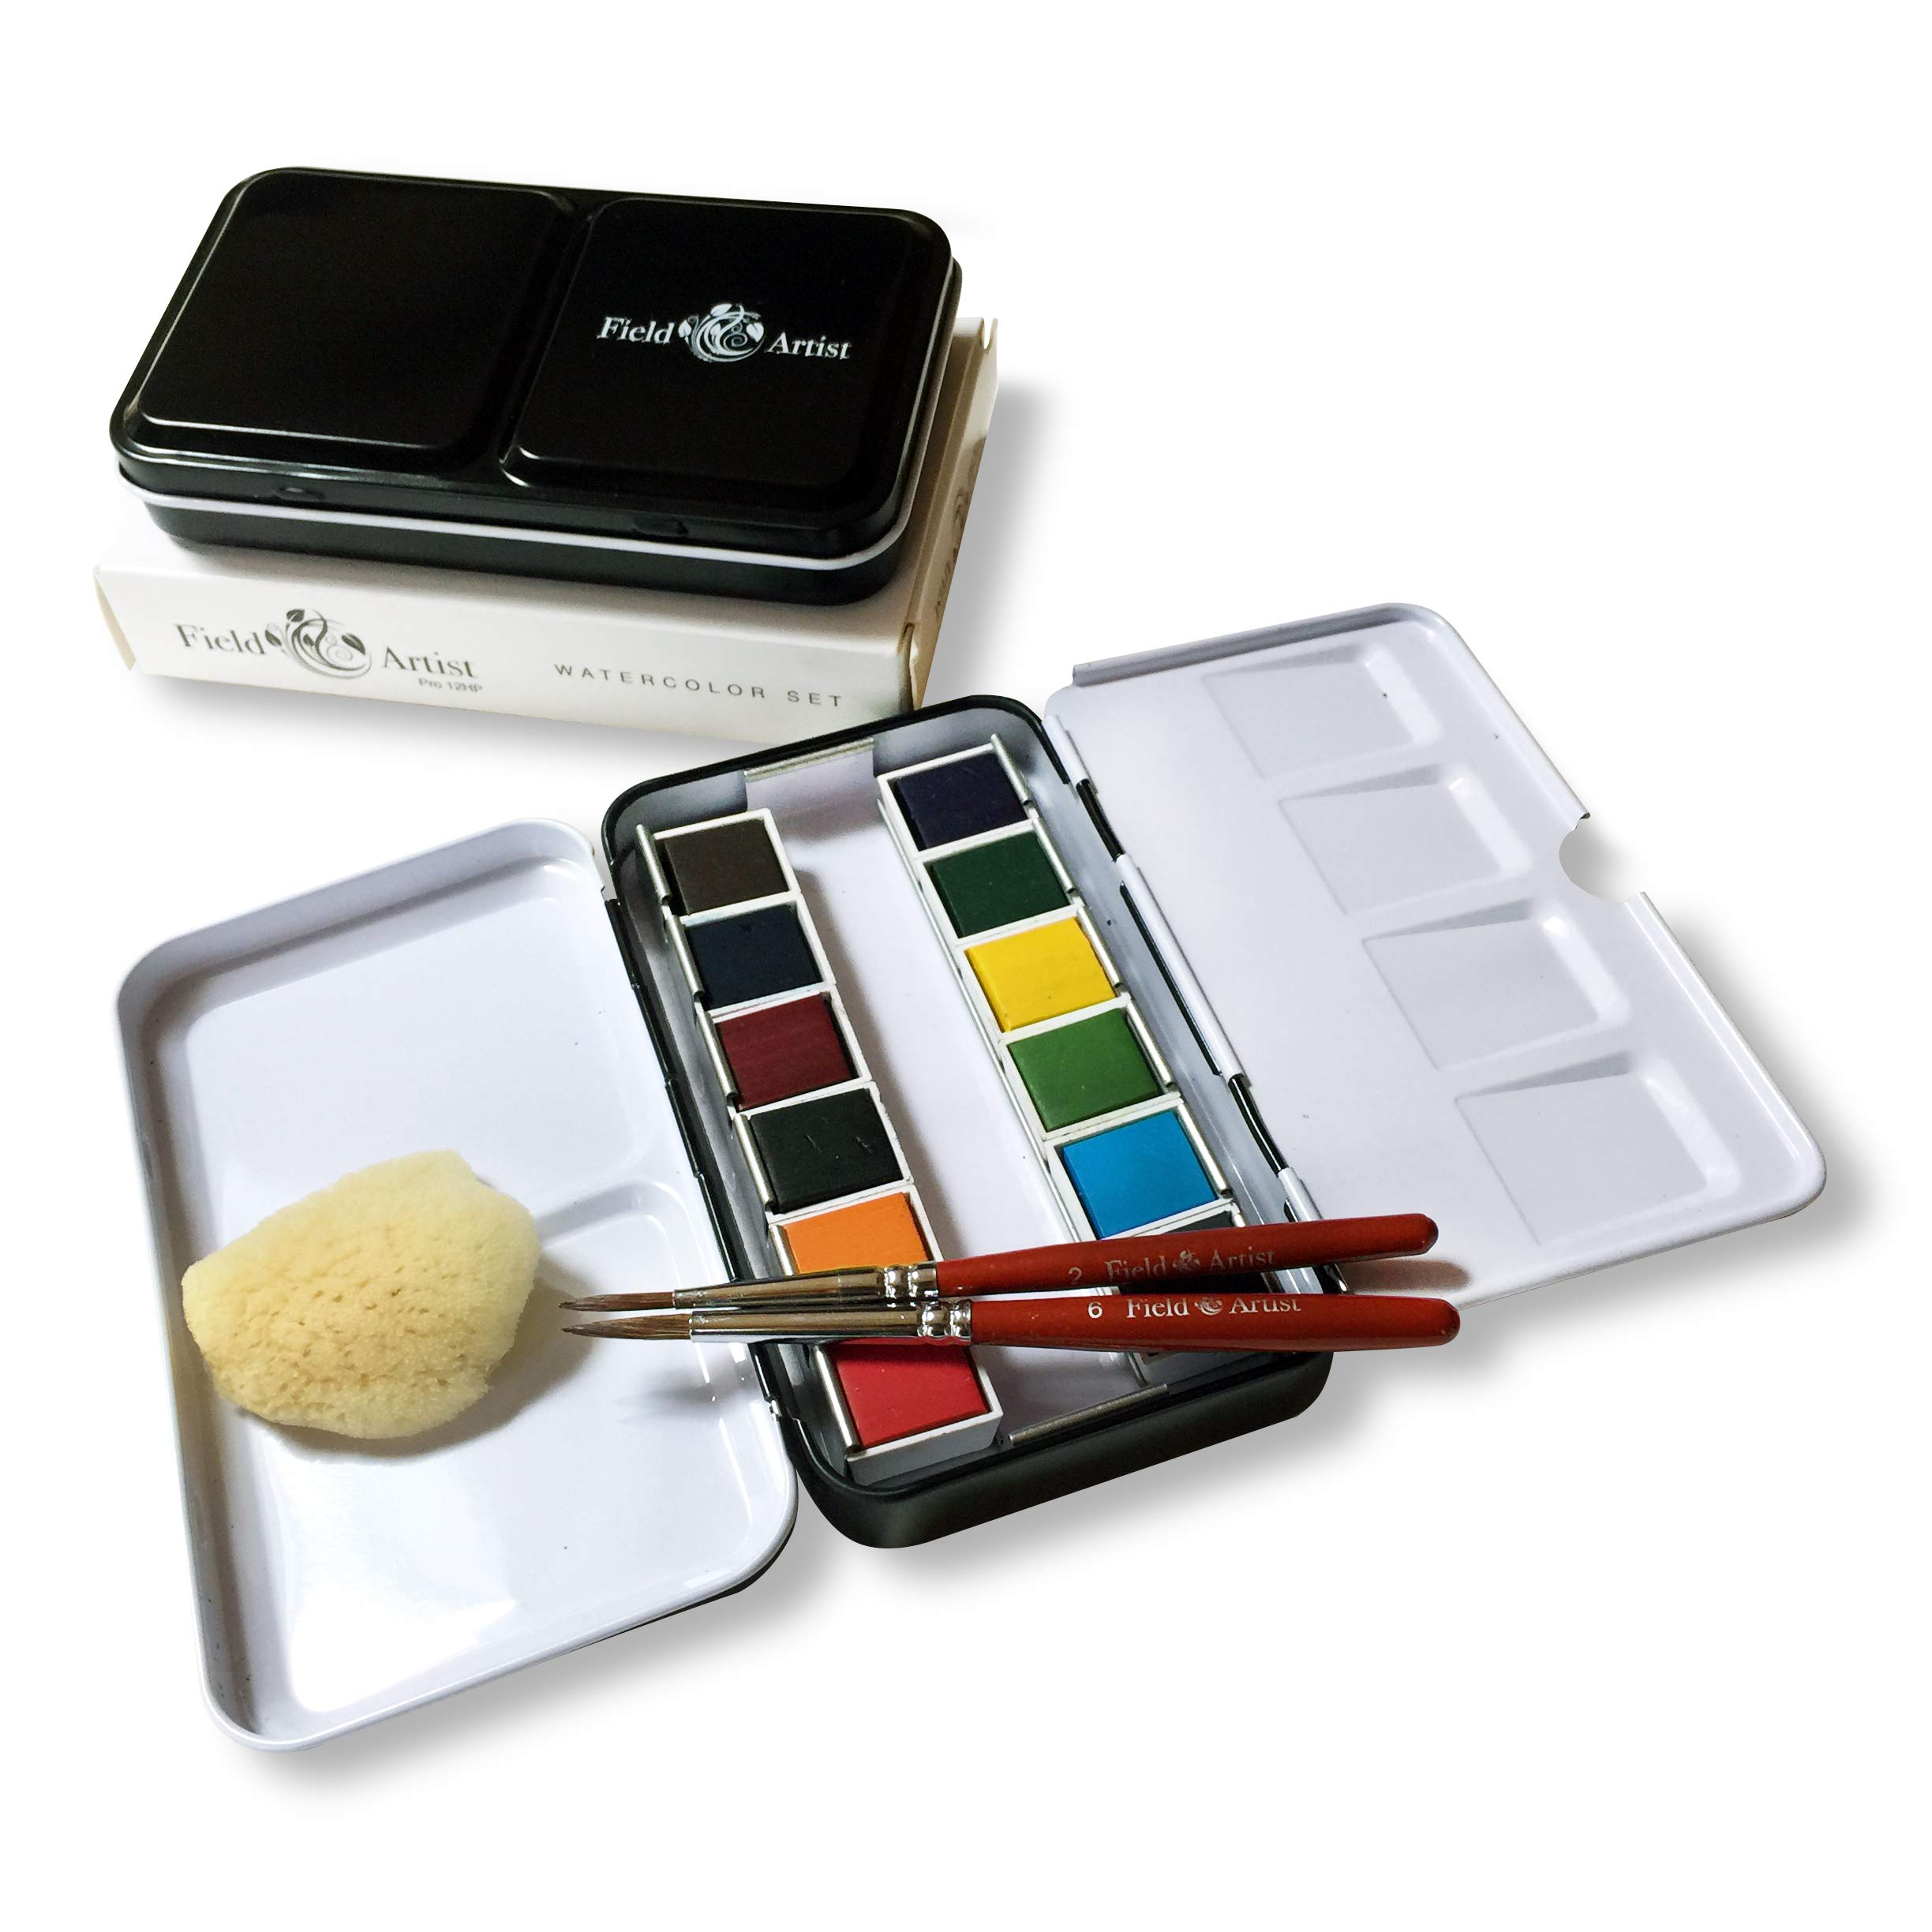 Field Artist Pro 12HP - Complete Travel Watercolor Set Includes 12 Brilliant Half Pan Colors, 2 Custom Brushes, a Genuine Sea Sponge, a Classic Metal Field Box, All fits in Your Pocket! by Field Artist